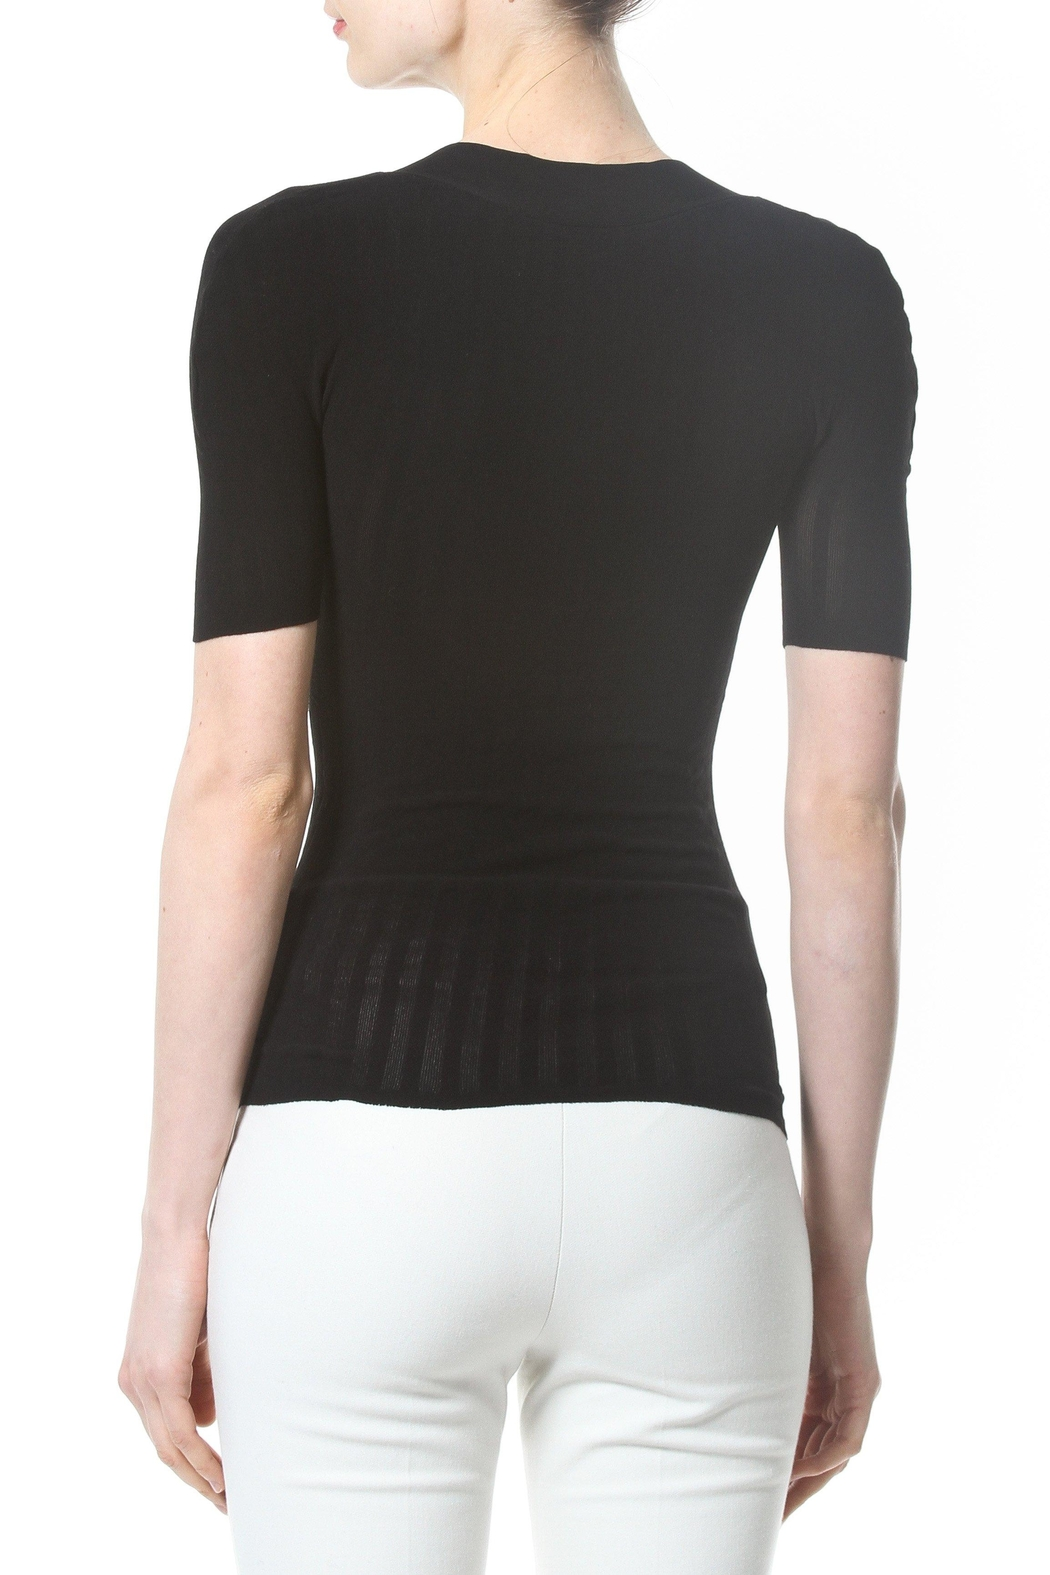 Madonna & Co Seamless Top - Front Full Image